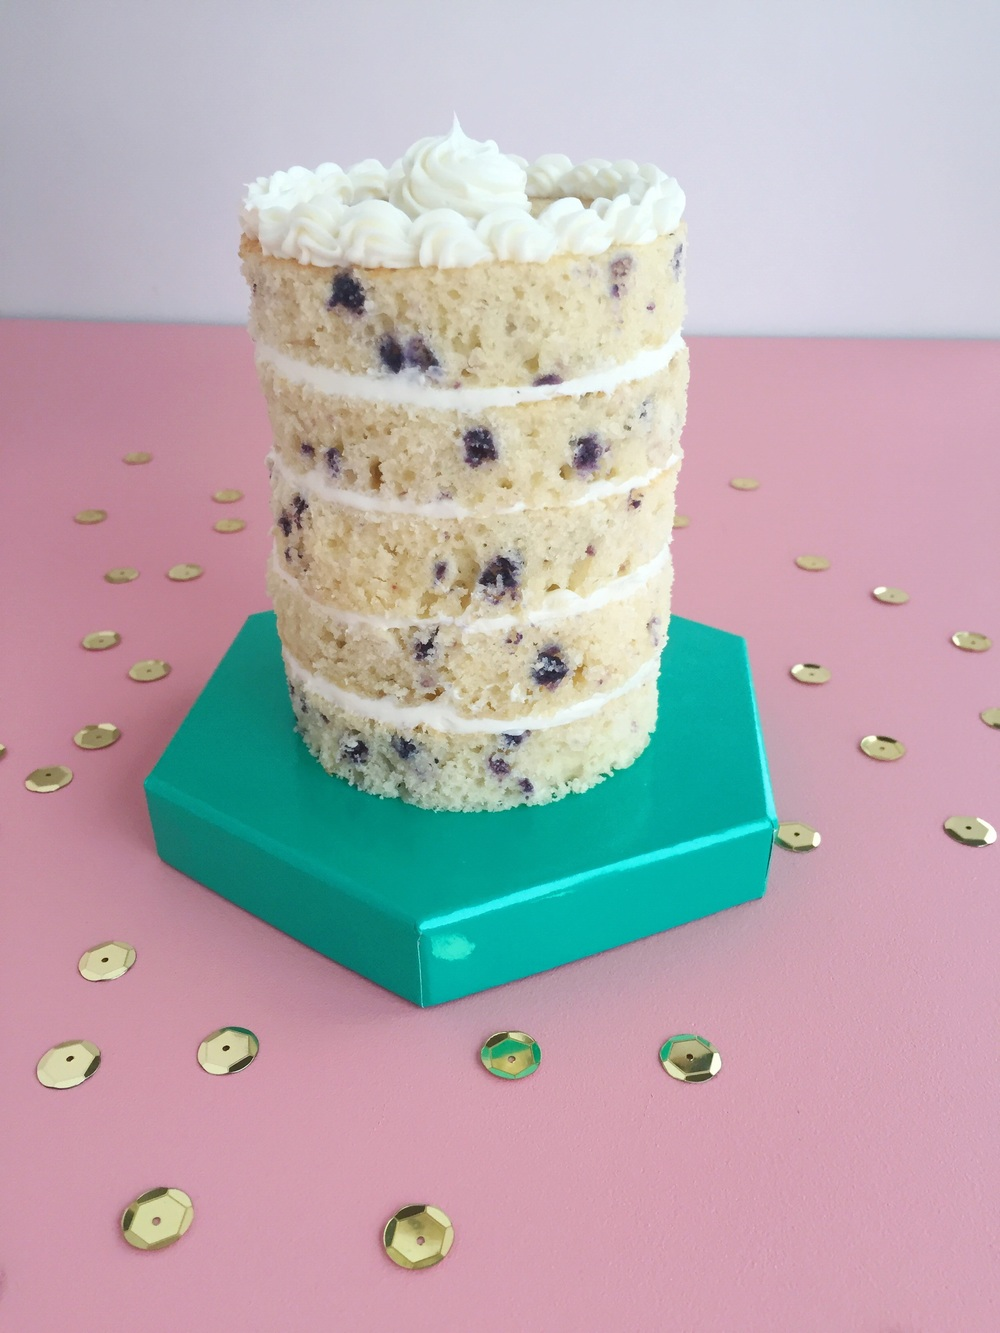 yummy blueberry layer cake